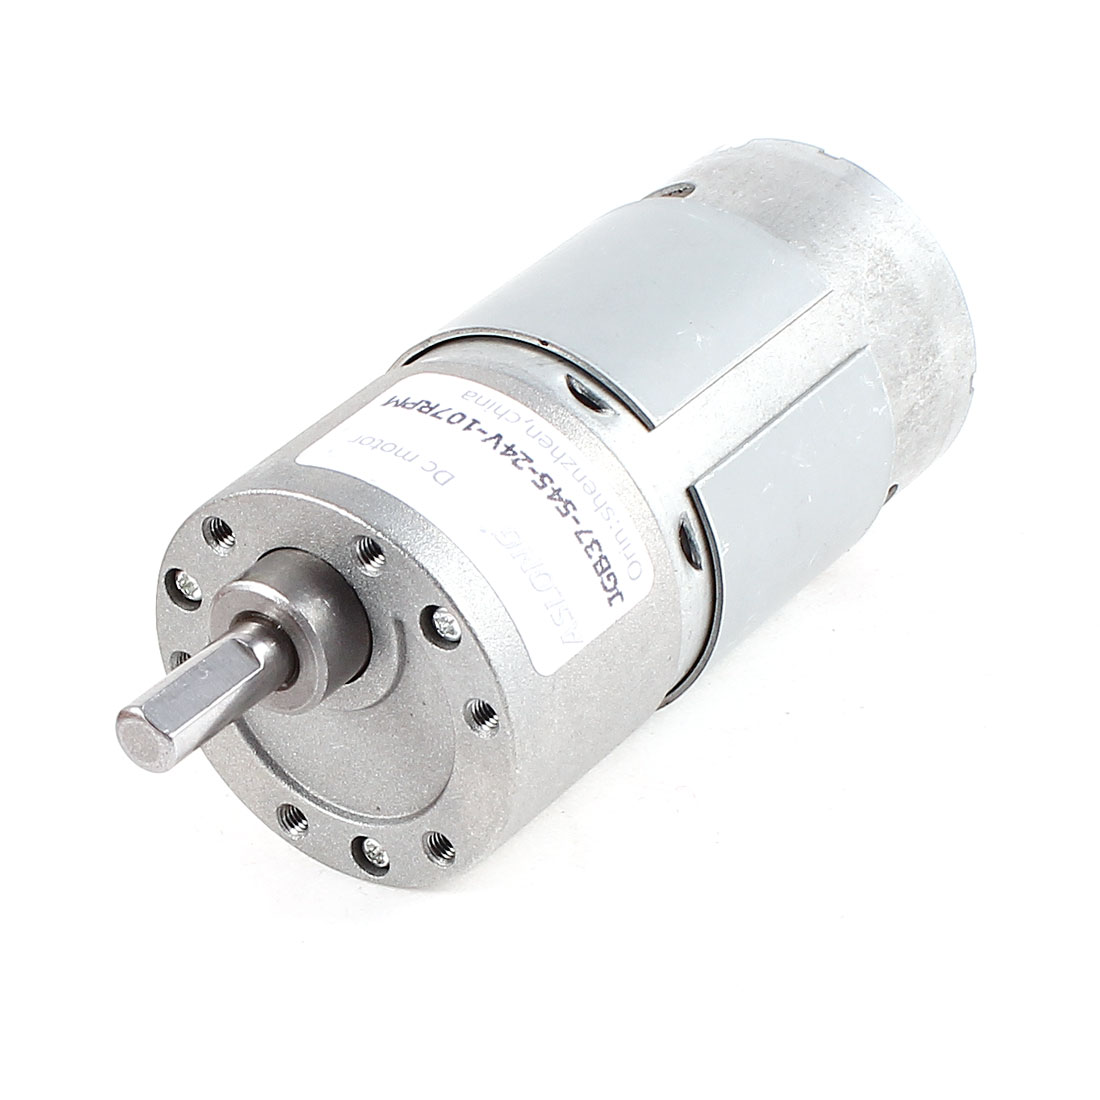 DC 12V 107RPM Metal Axle Electric Geared Box Speed Reduction Motor for Smart Car